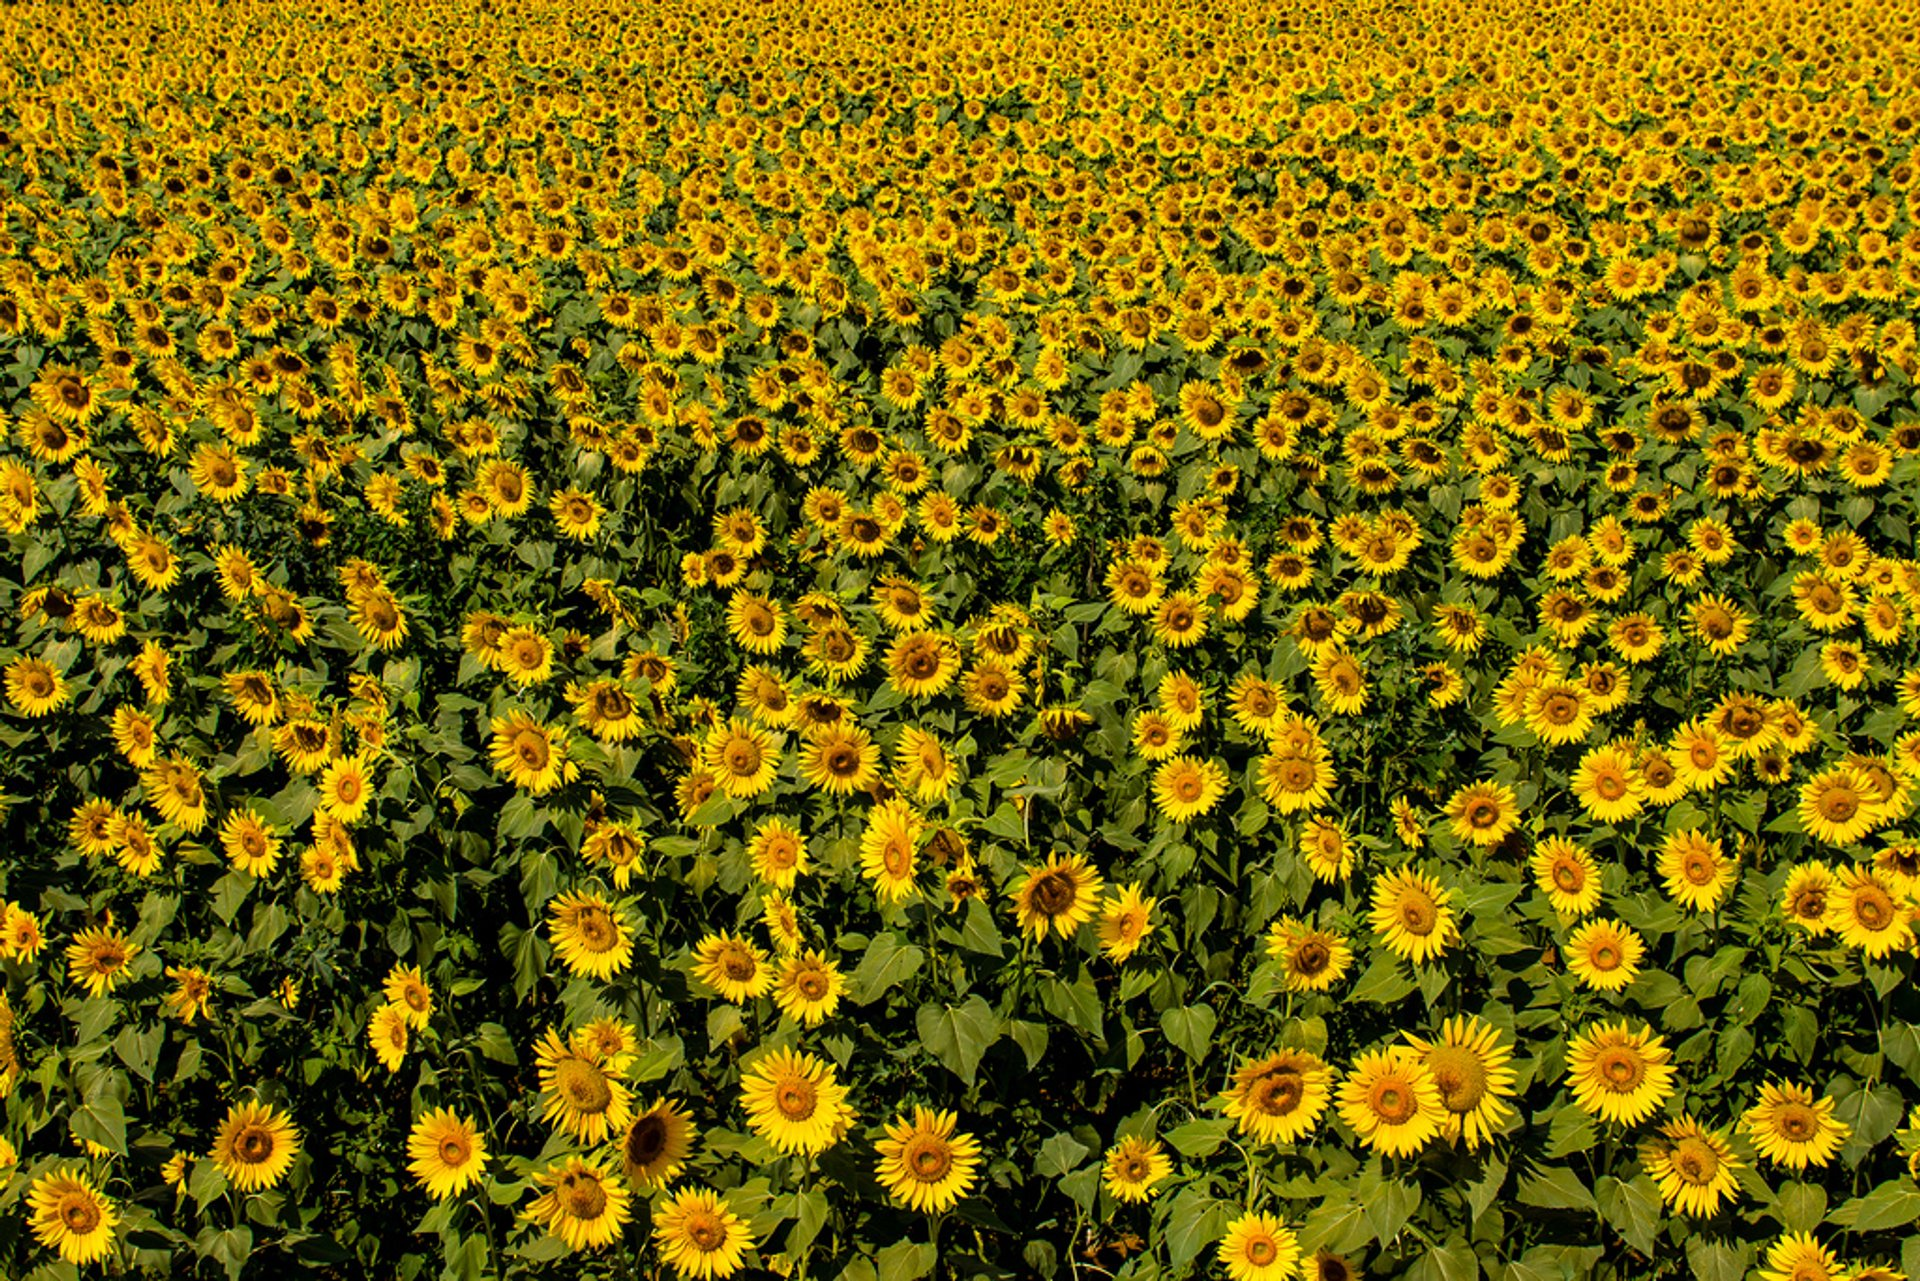 Sunflowers in Japan - Best Season 2020